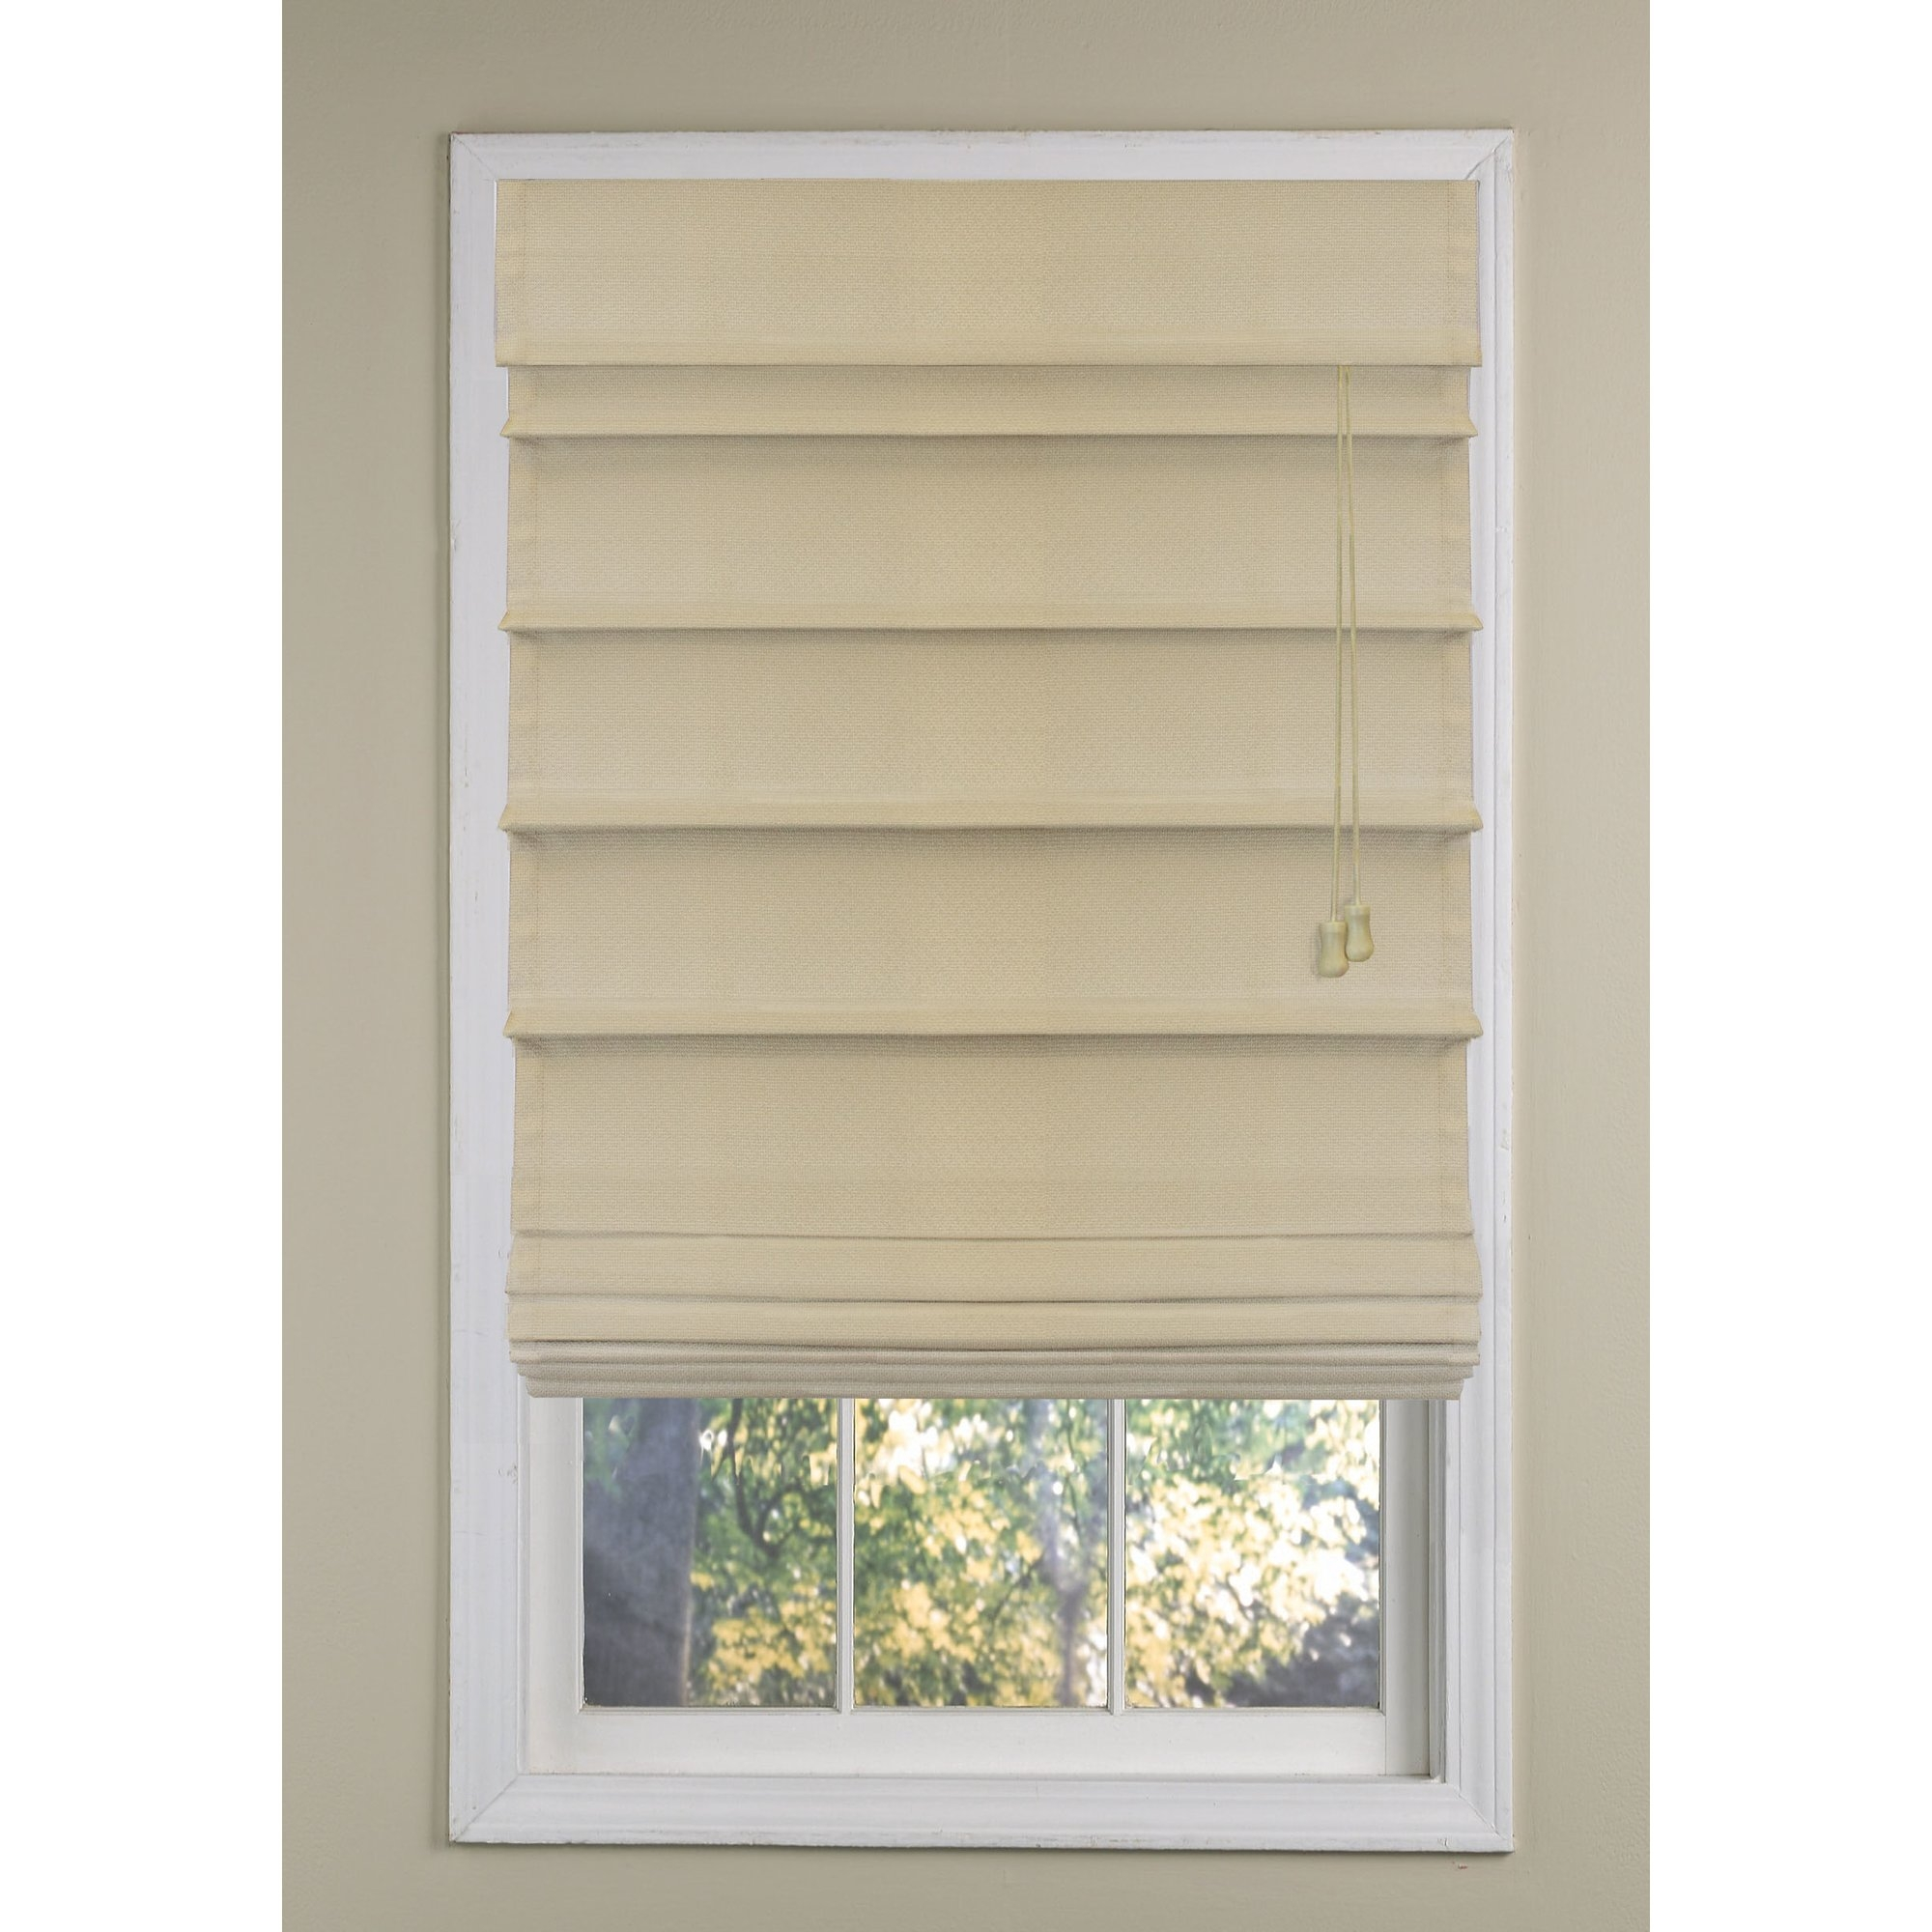 Beachcrest Home Roman Shade Reviews Wayfair Within Neutral Roman Blinds (View 14 of 15)